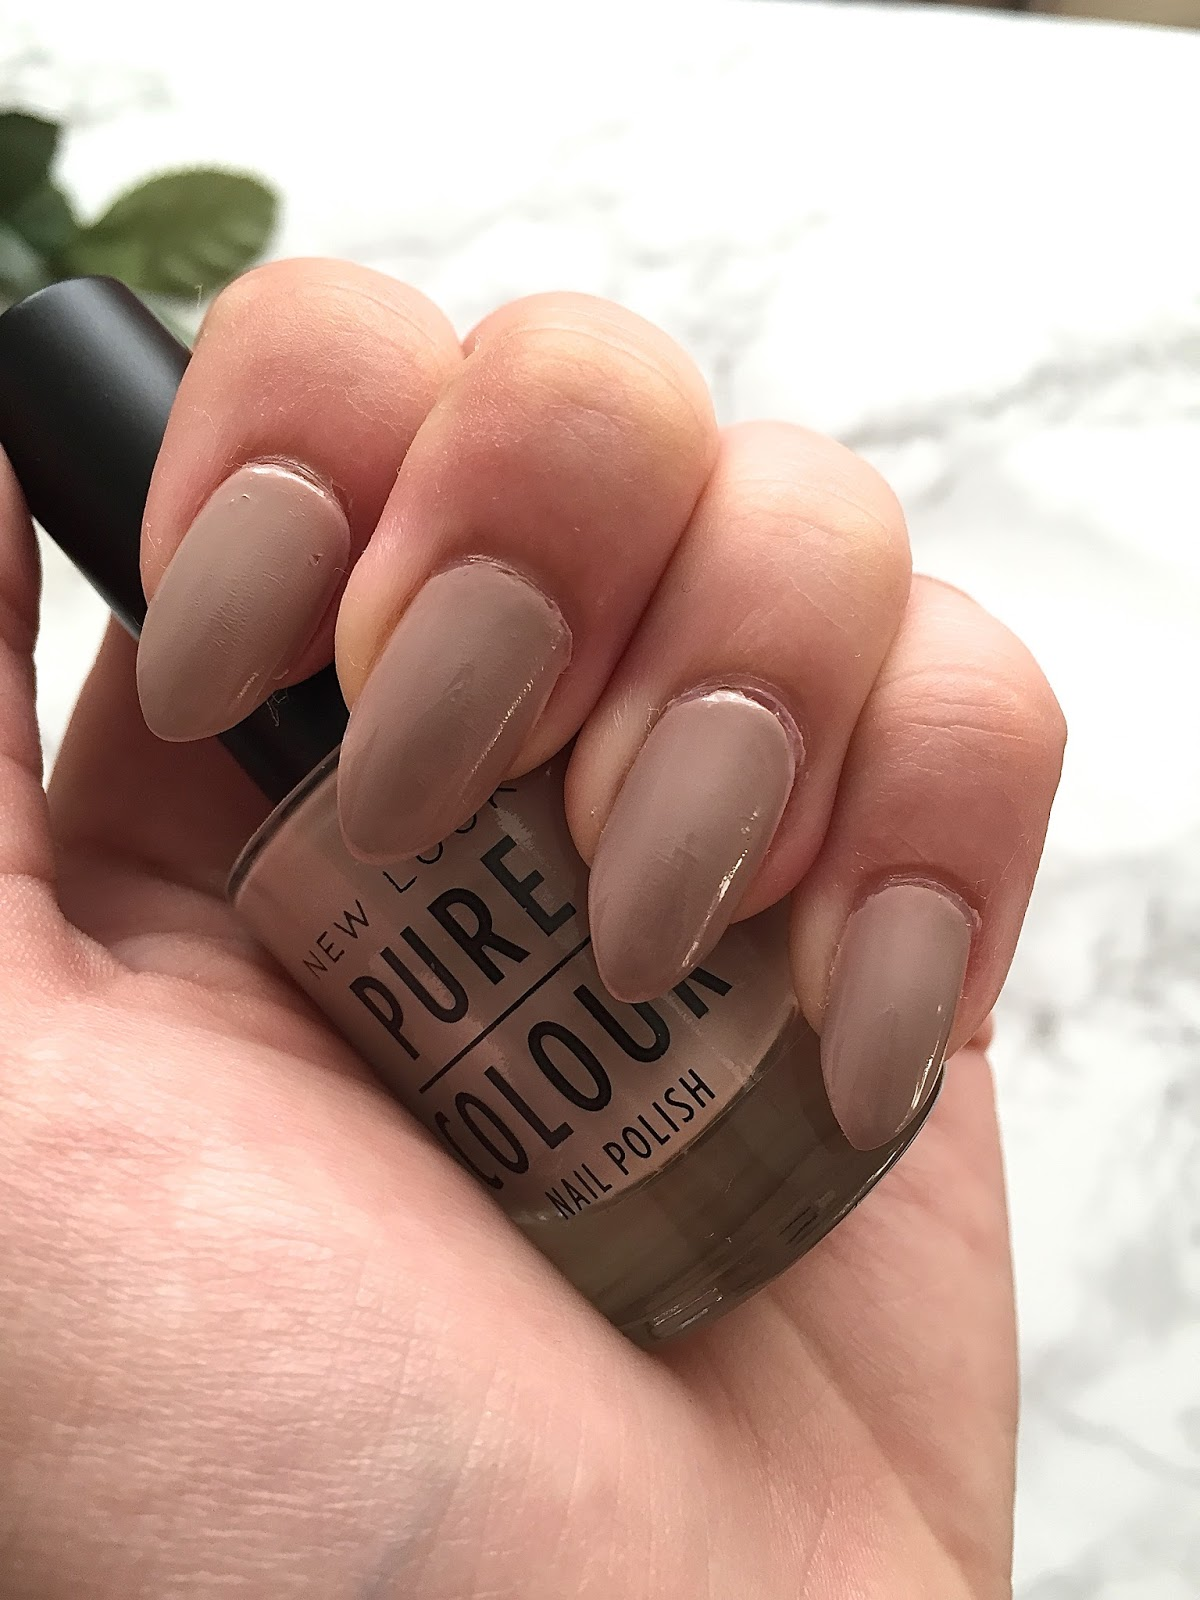 Emily fayes little world blogtober day 5 diy stiletto and im sure you have all seen how stiletto almond and coffin shaped nails have been becomingly increasingly popular recently i wanted to find a cheaper and solutioingenieria Gallery